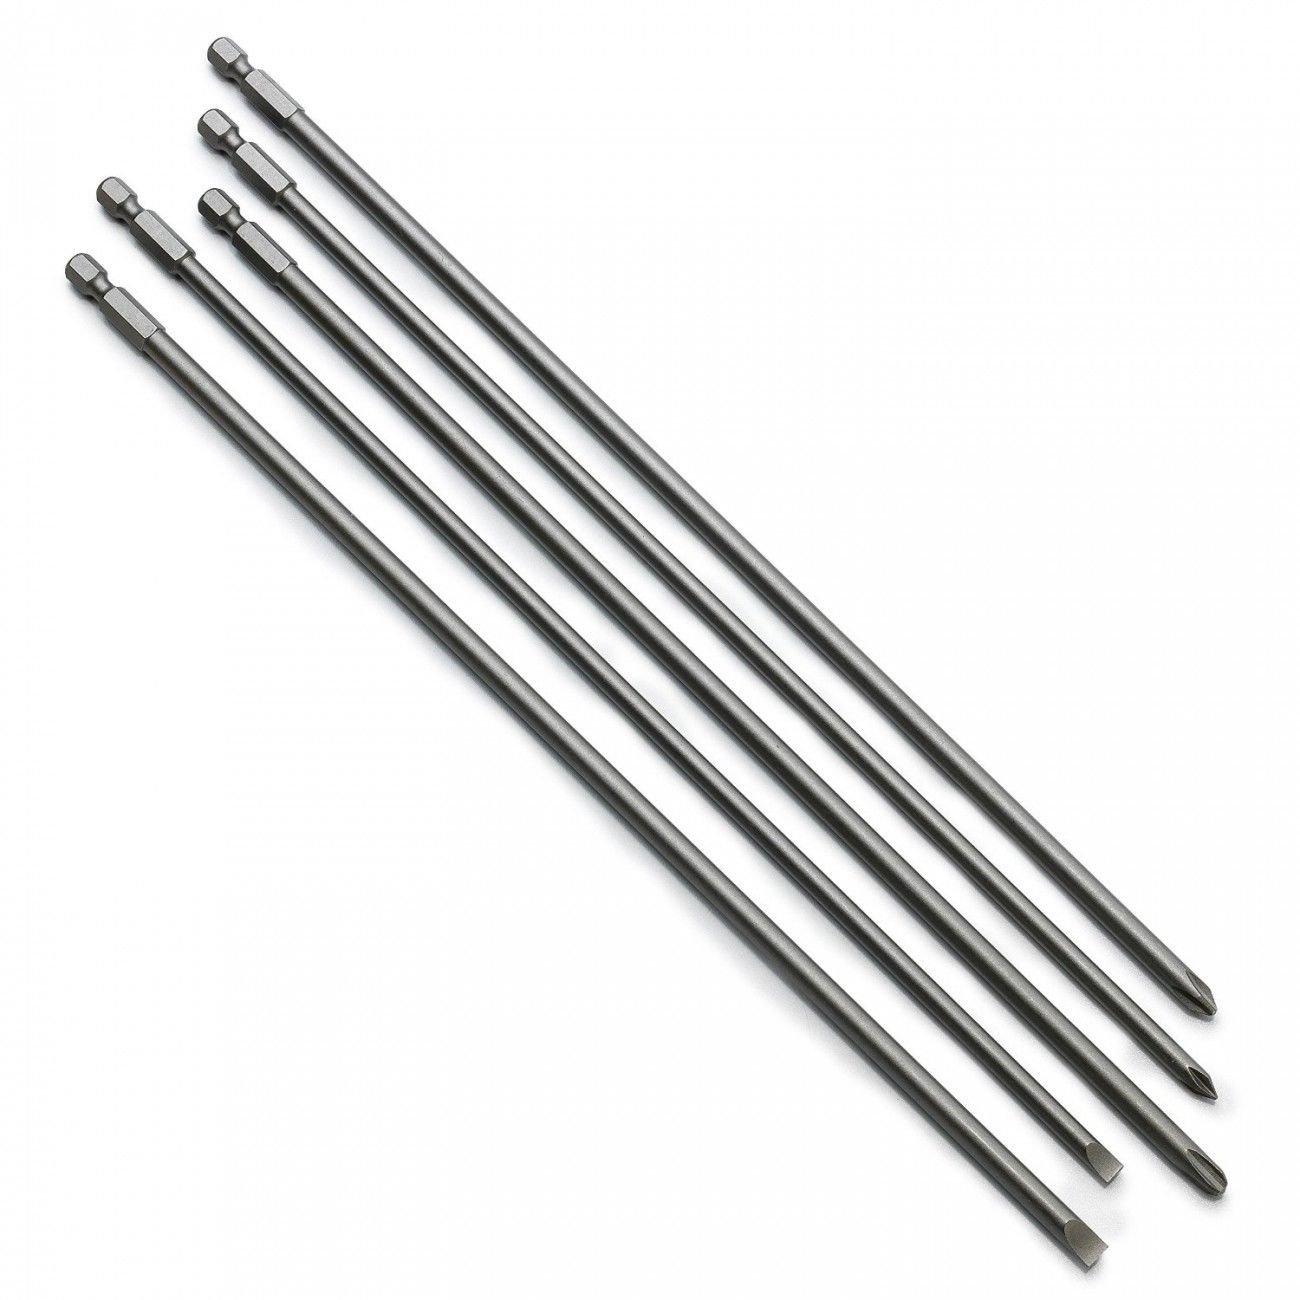 J&R Quality Tools 5 Pc Super Long S2 Phillips Screwdriver Bit Set 12in